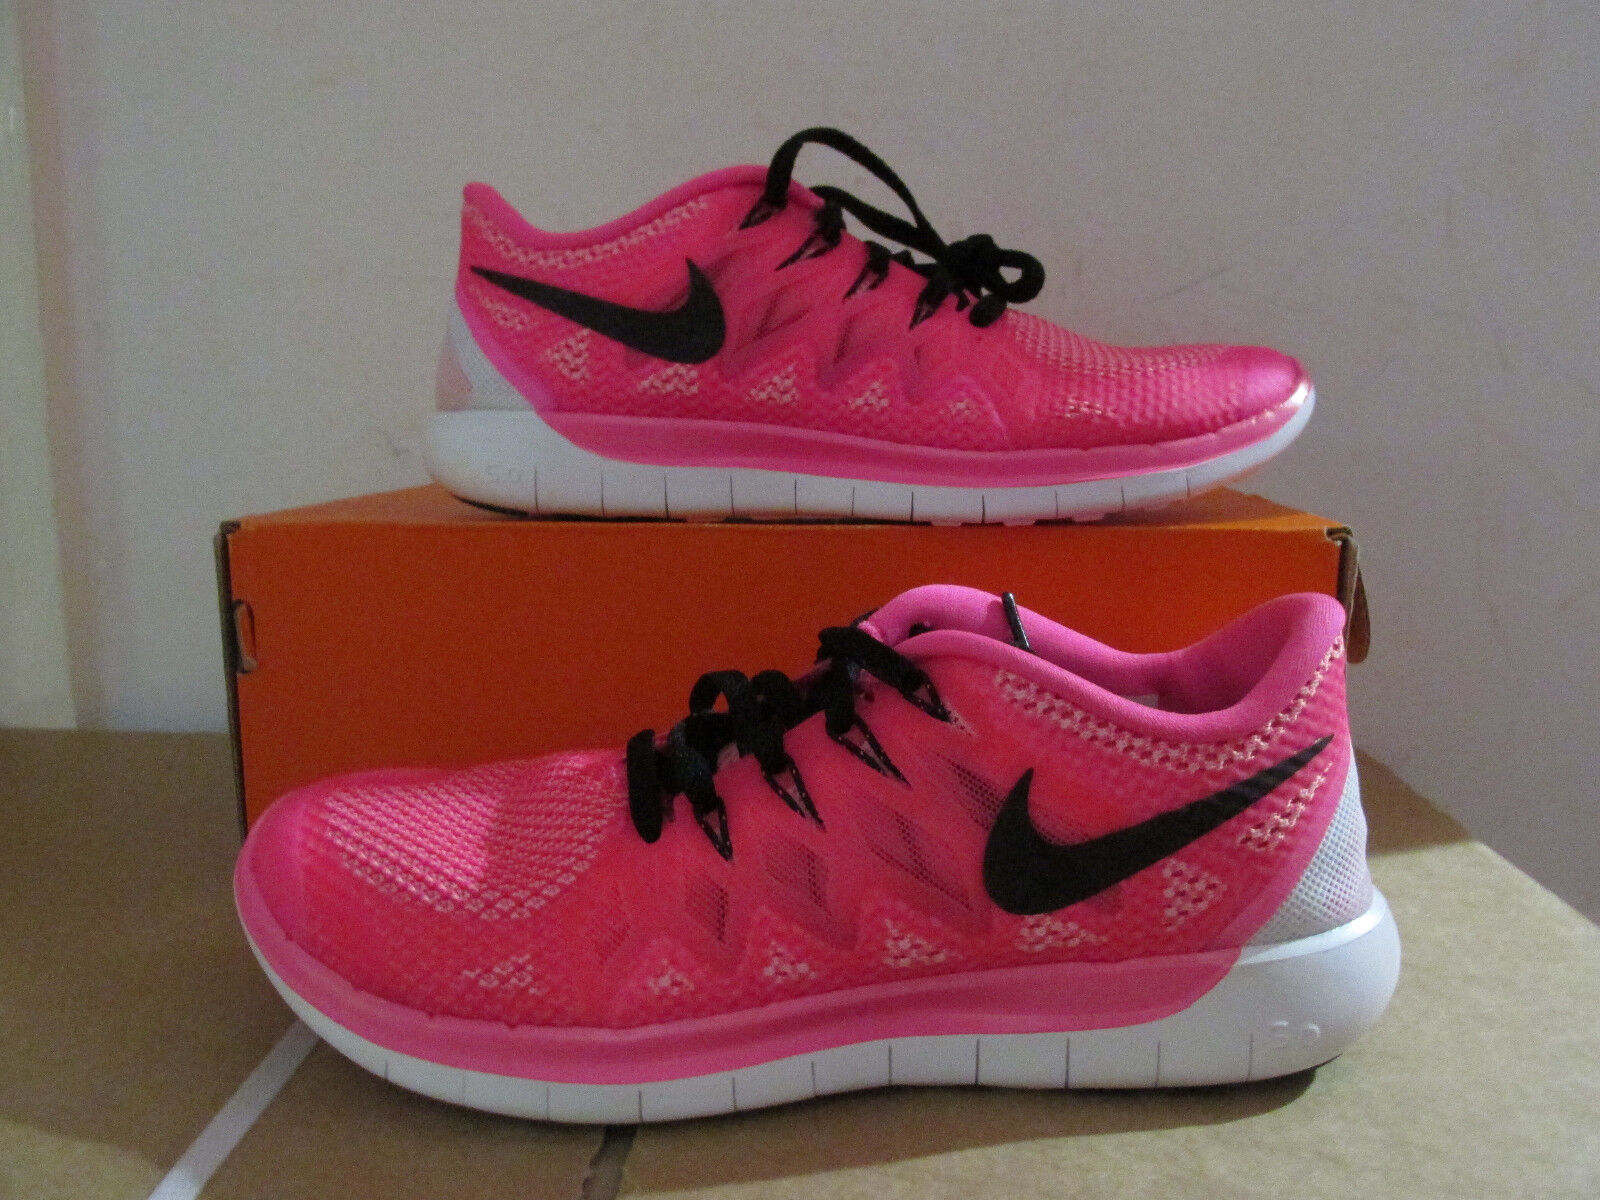 NIKE Air Max Sequent - 3 Femme's Trainers, Orange - Sequent Taille 5.5 e21d4a